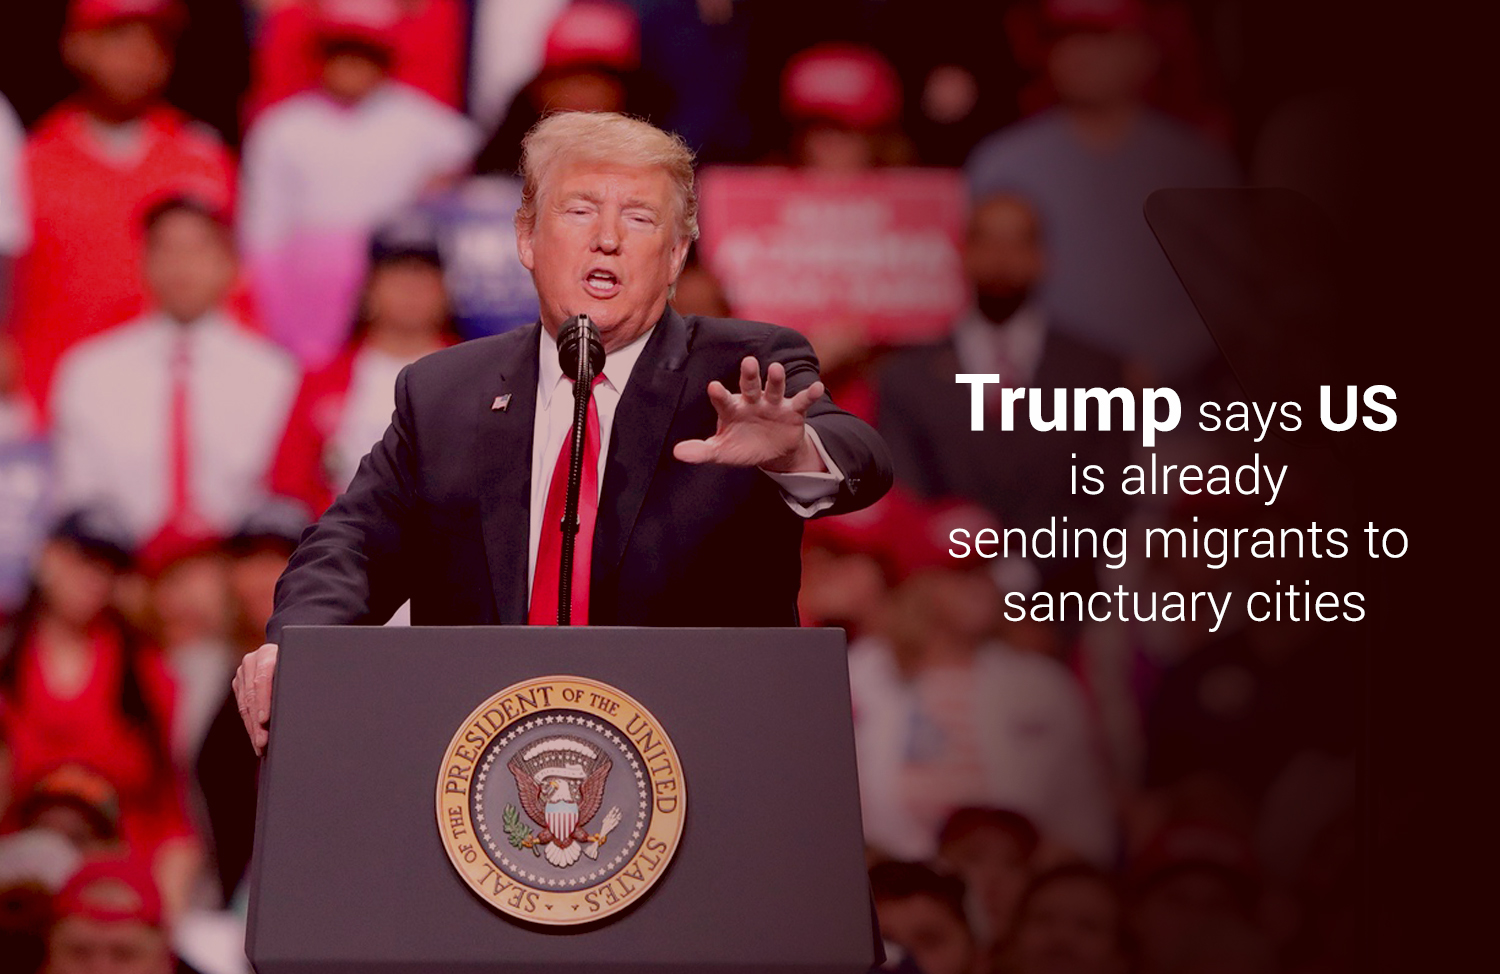 Trump Announced they Already Directing Migrants to Secure Cities